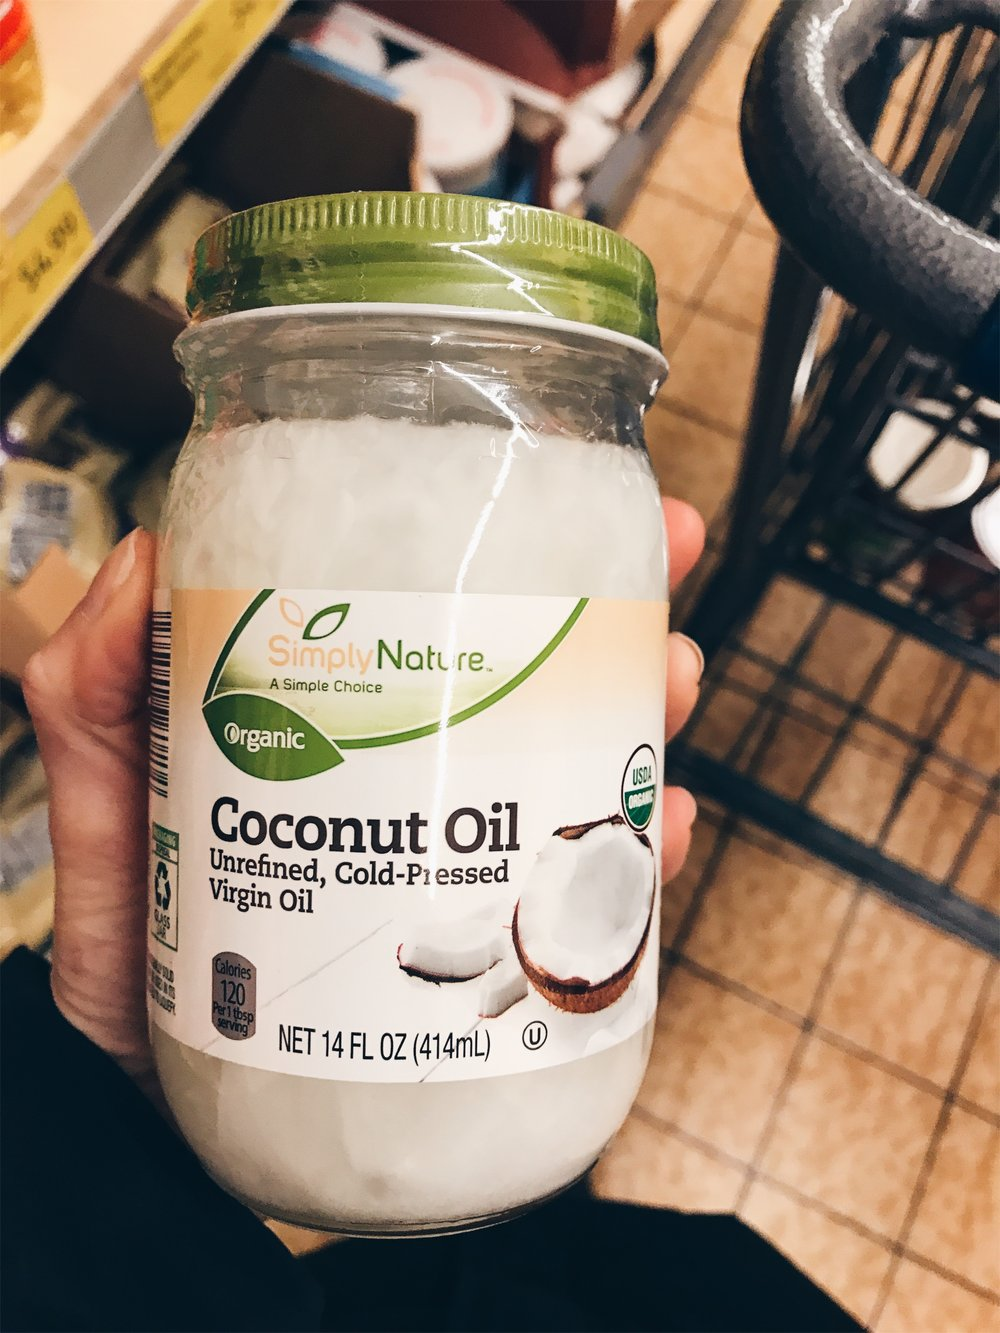 YES! YES! YES! I cook almost everything in coconut oil. It is the absolute best. And ALDI's is only $4.99. The cheapest I have seen around town. This is perfect for cooking eggs, meats, roasting veggies, and many other things.